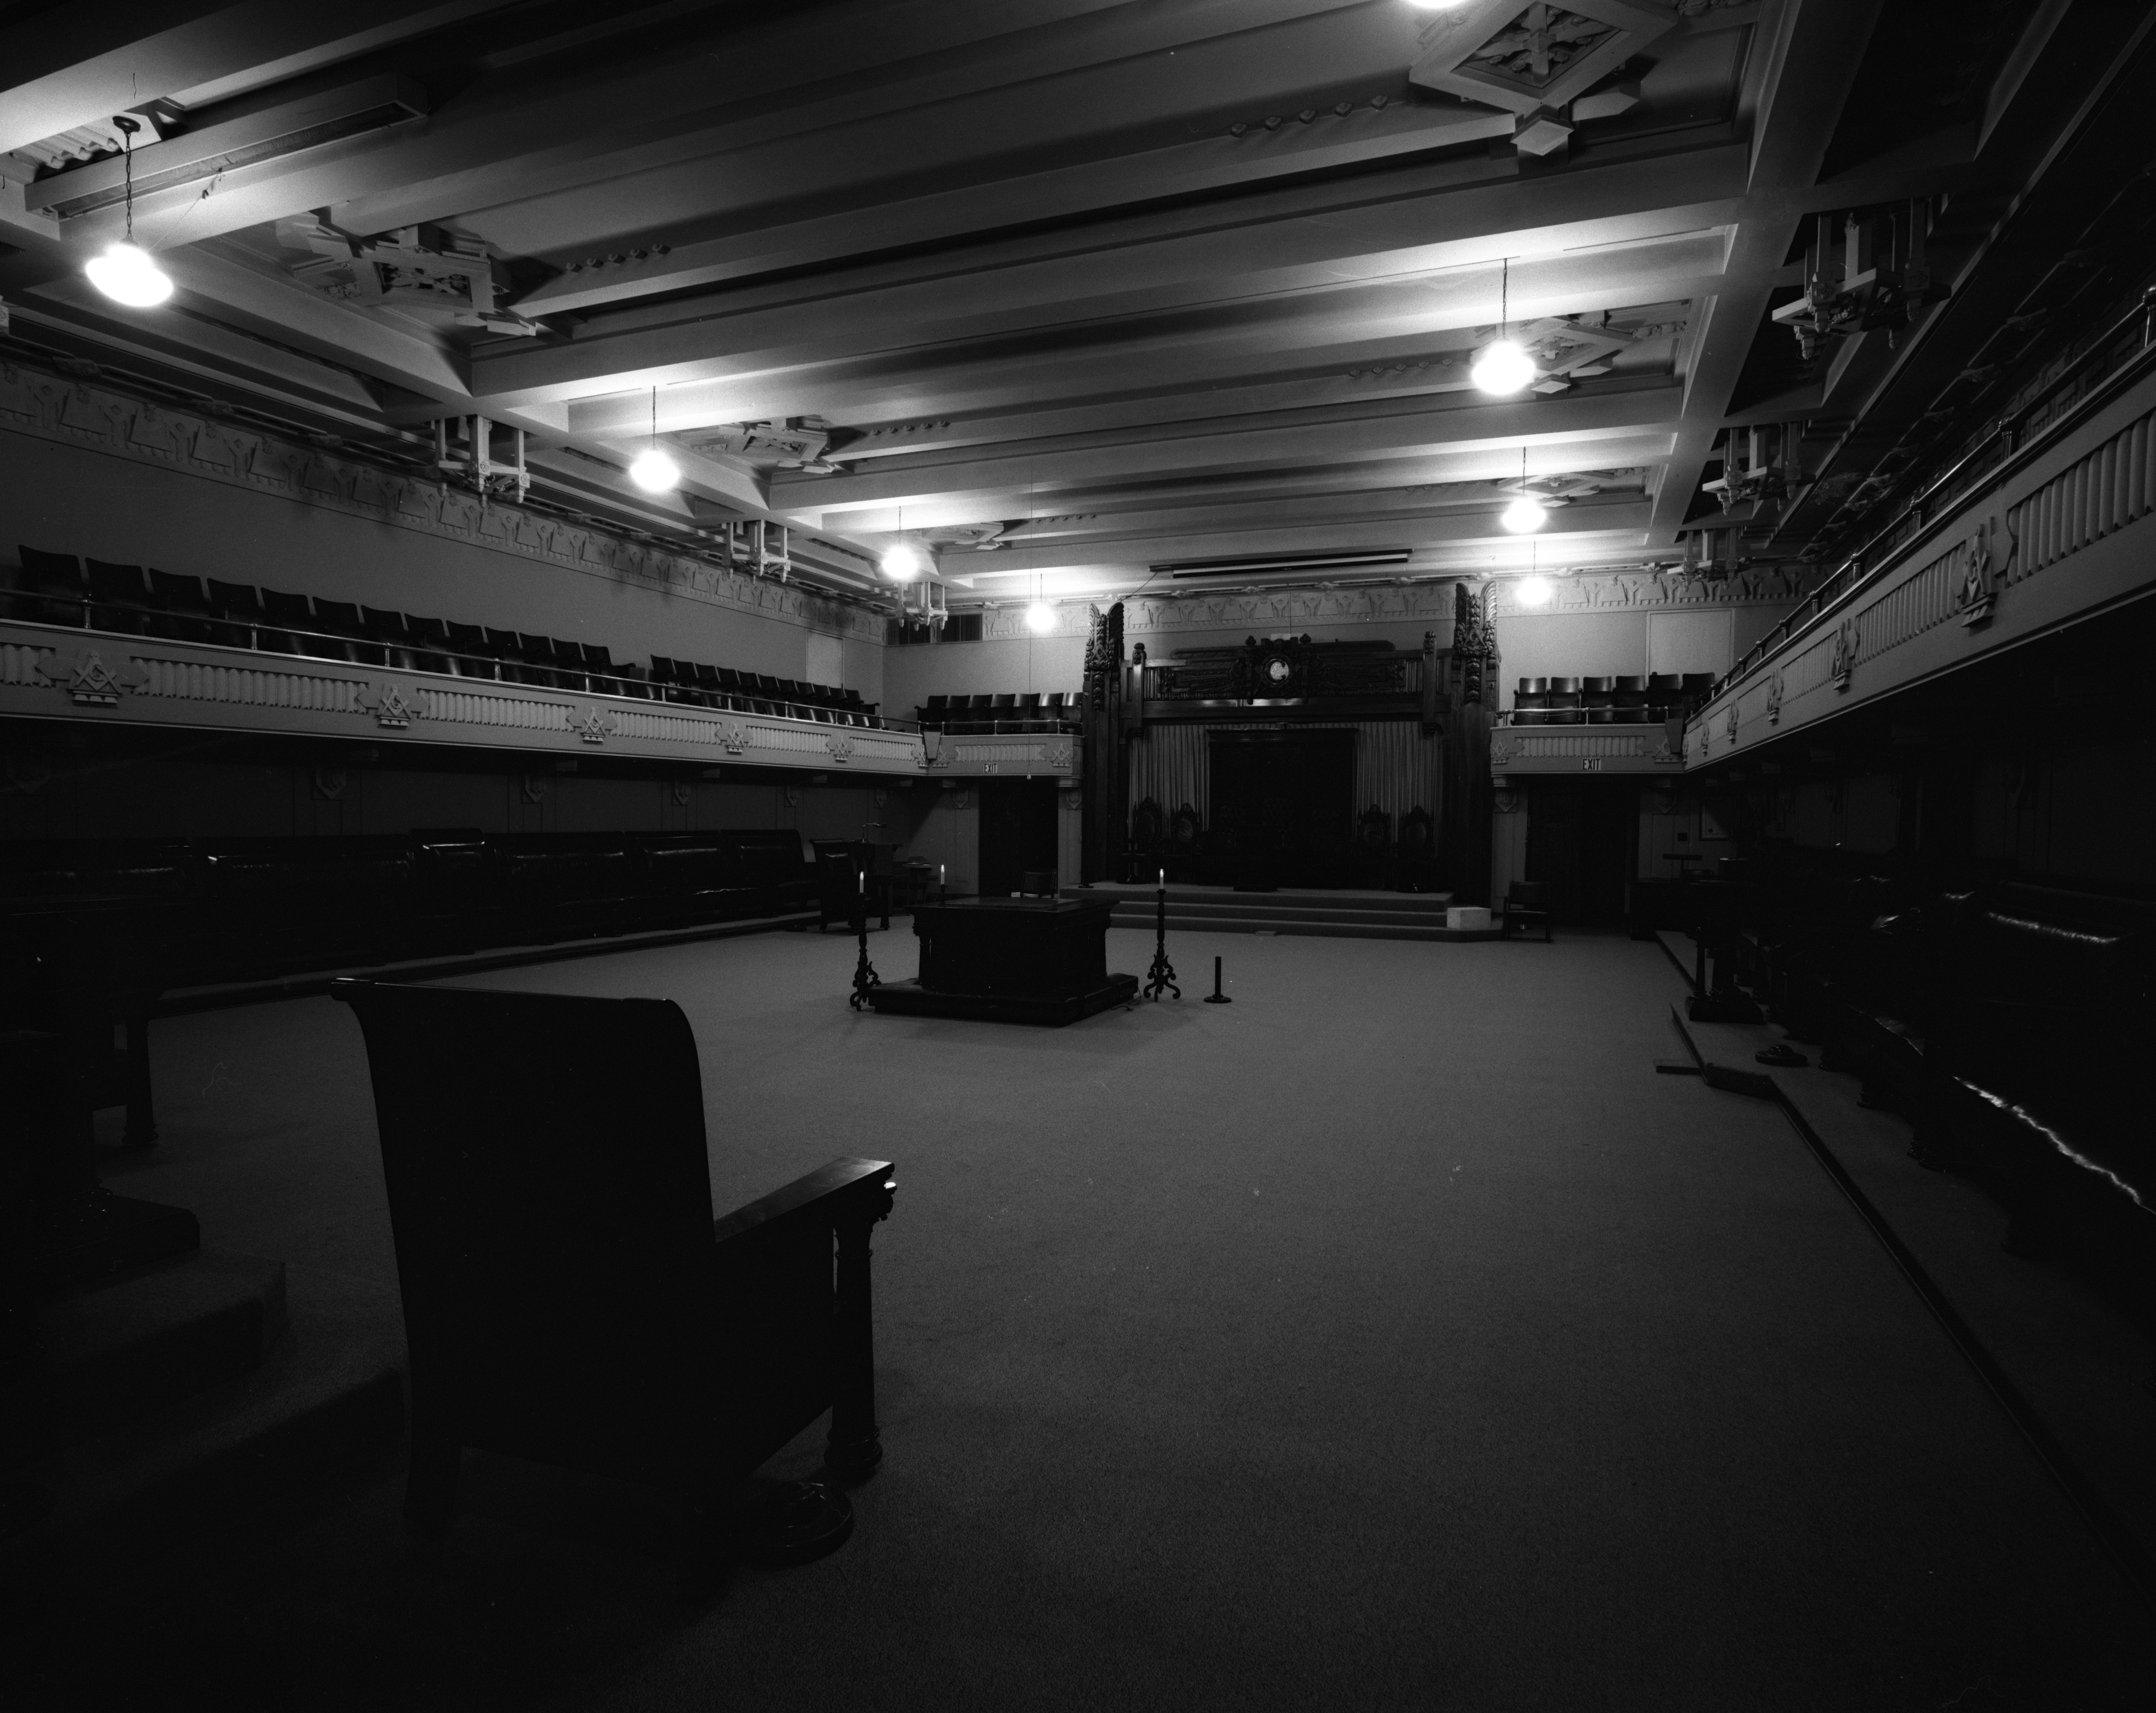 Interior lodge room of the Masonic Temple, July 1973 image